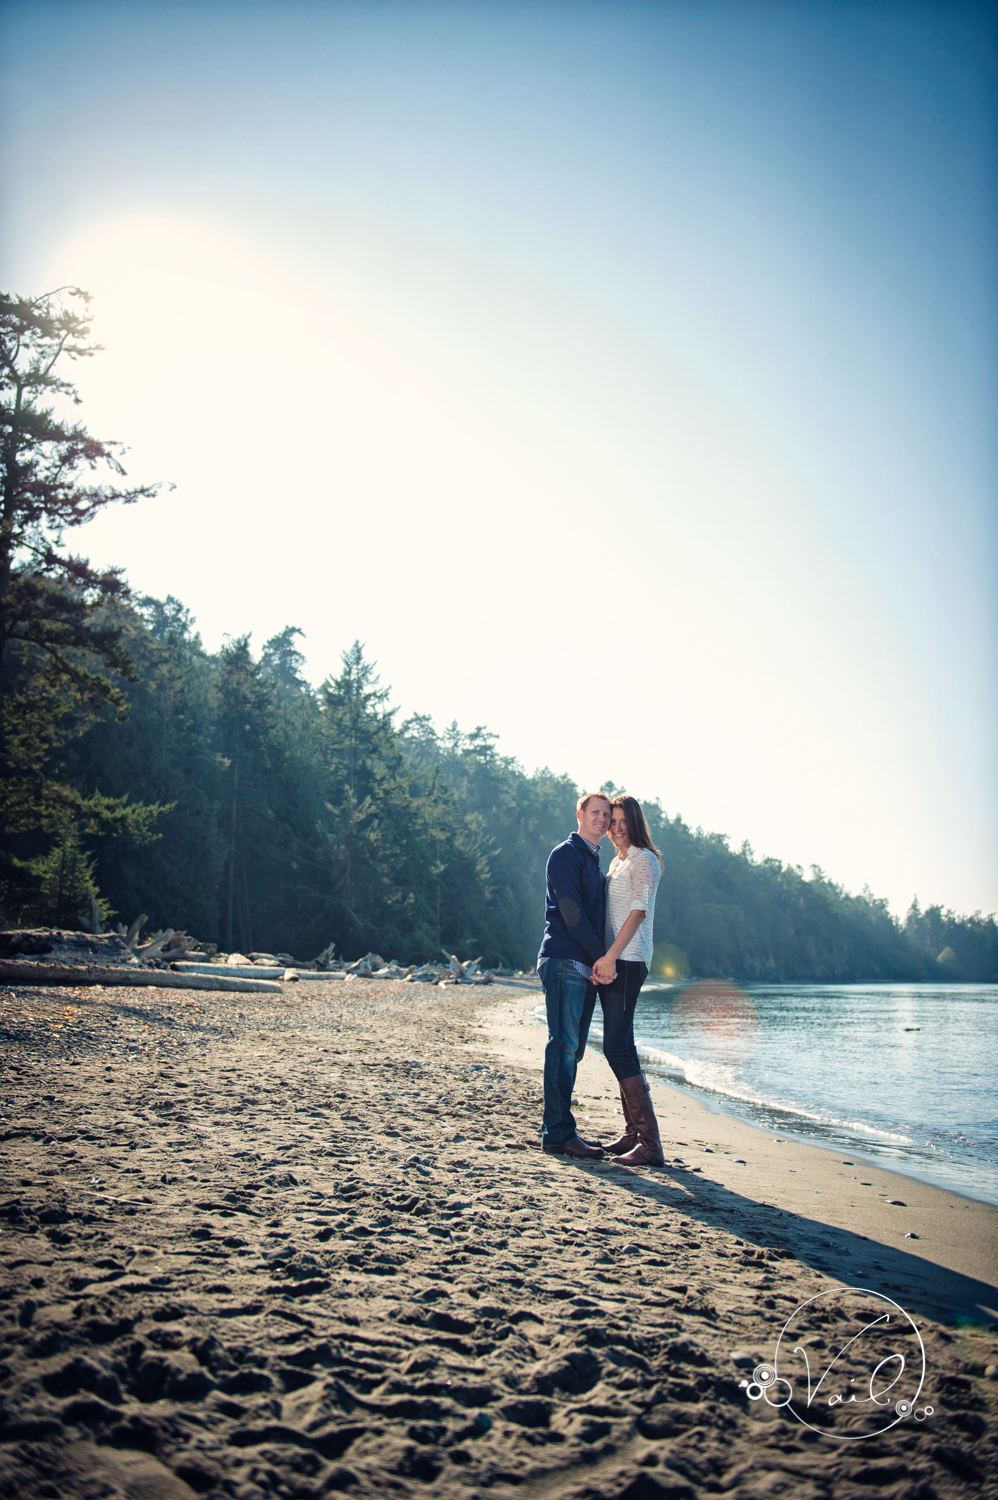 Whidbey Island engagement photography deception pass-12.jpg